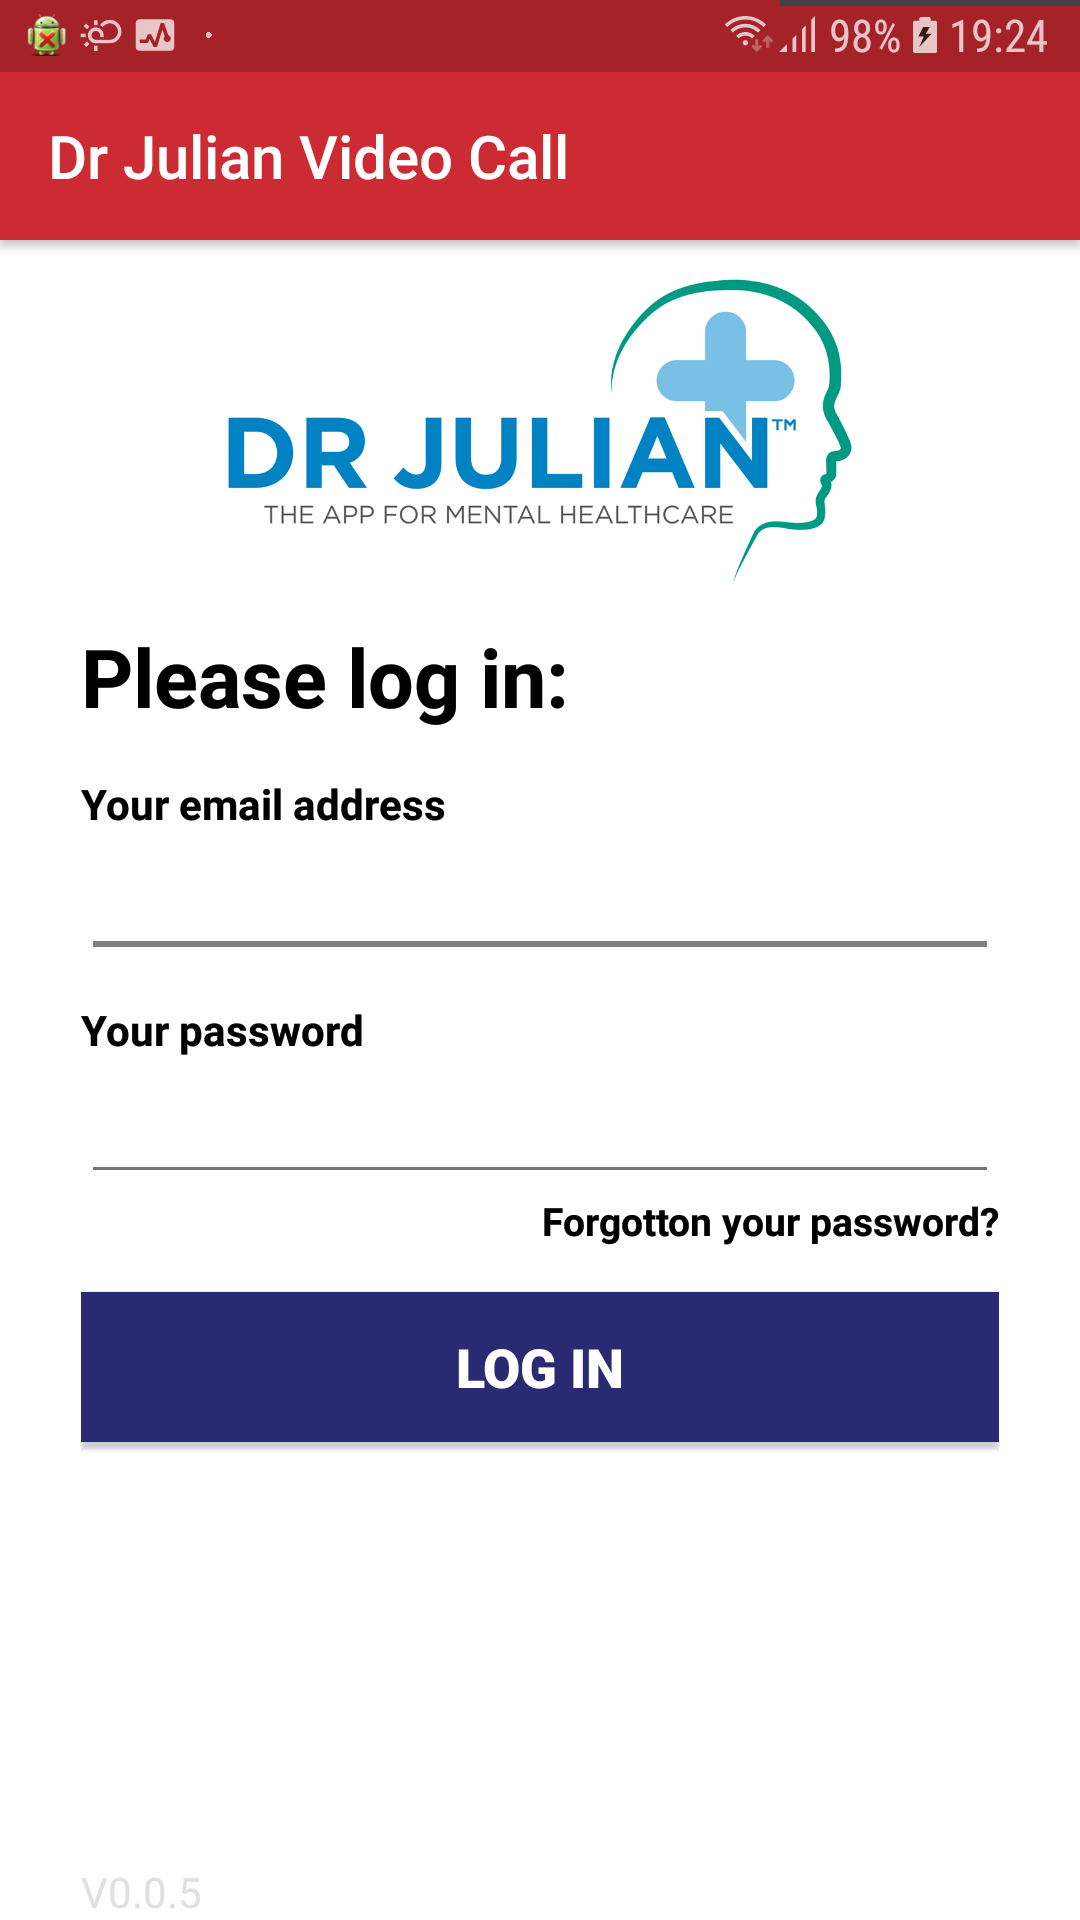 //dr-julian.com/wp-content/uploads/2018/11/Dr-J-Login-Screen.png